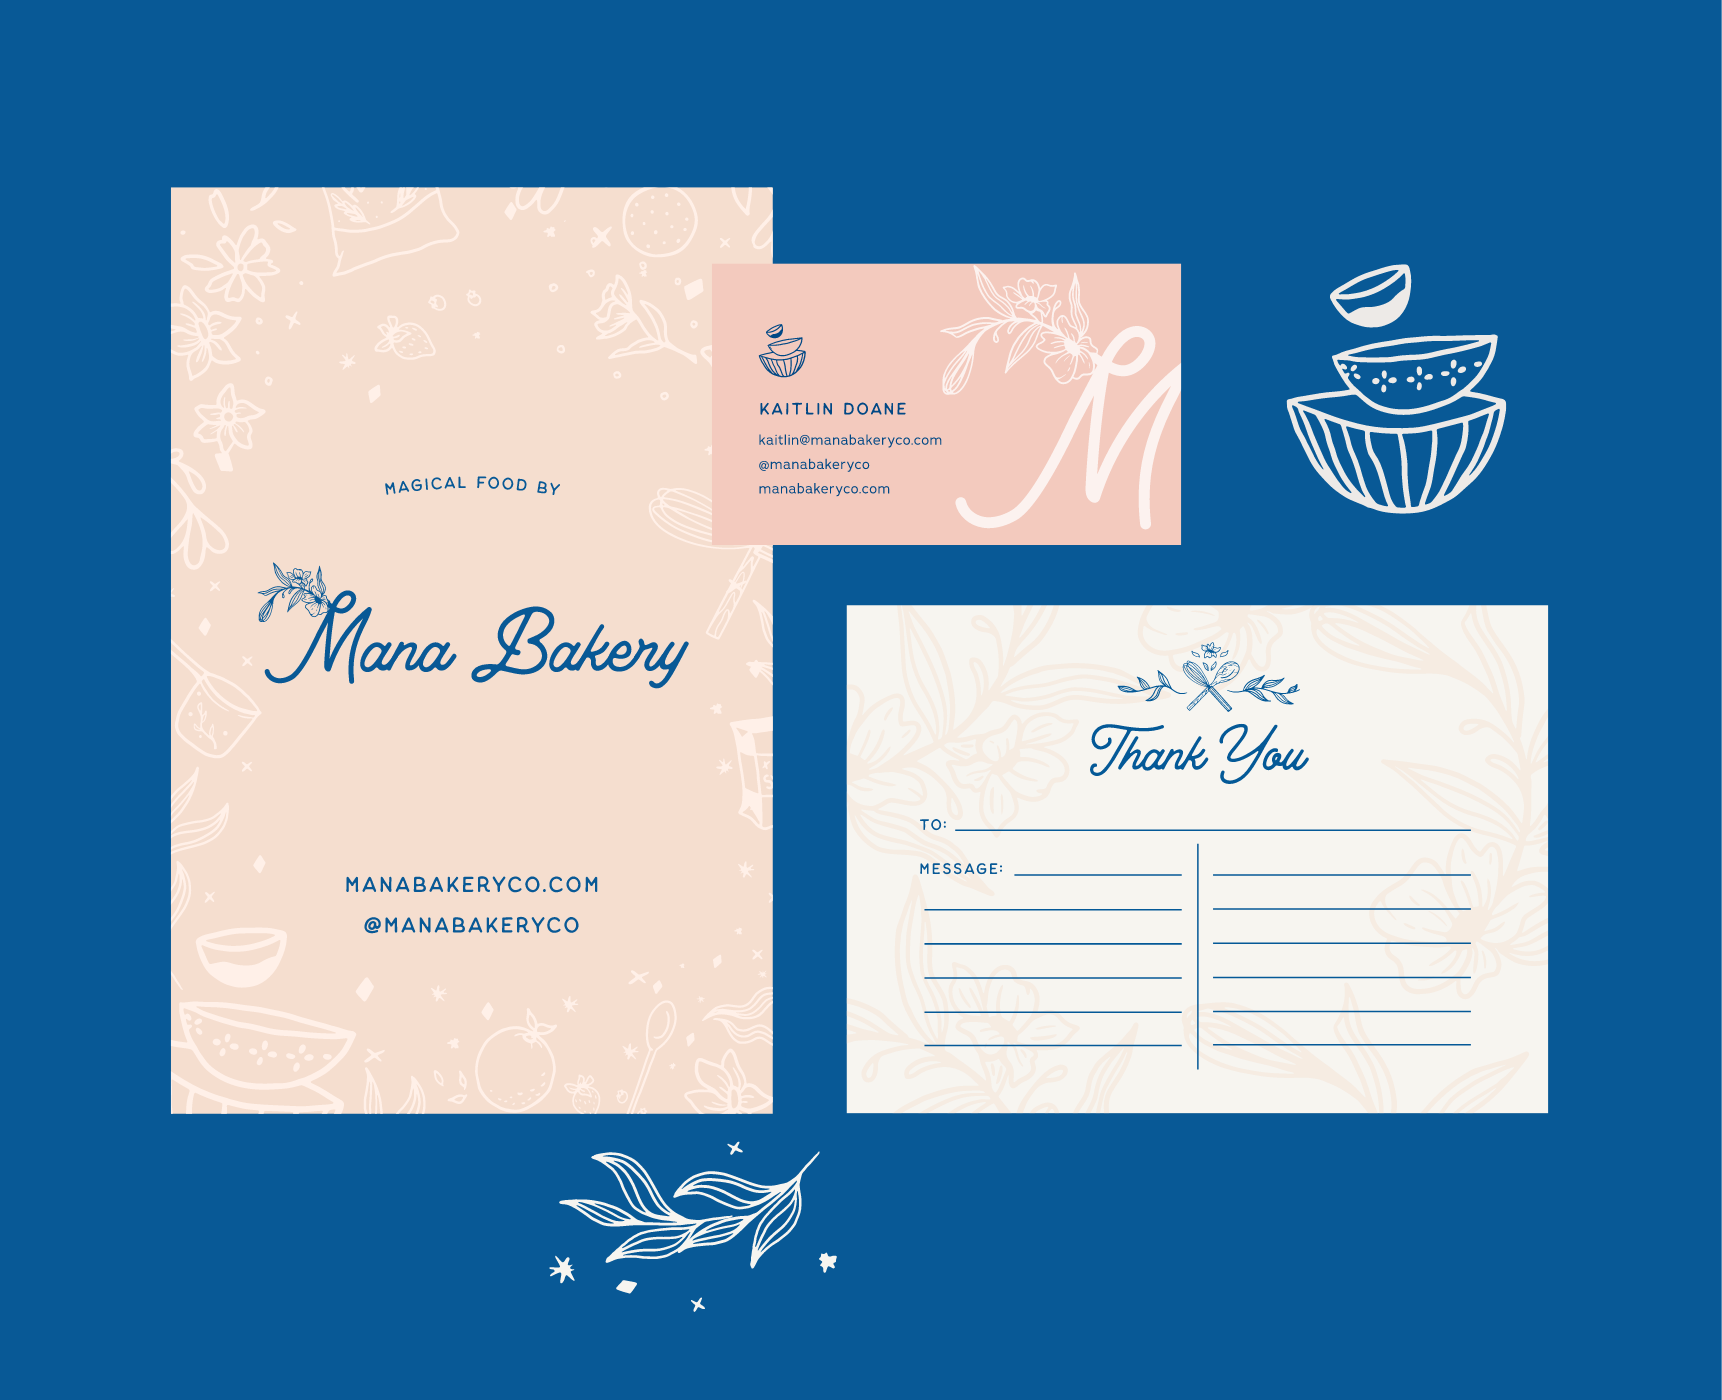 Mana-Bakery-Brand-Assets@2x.png